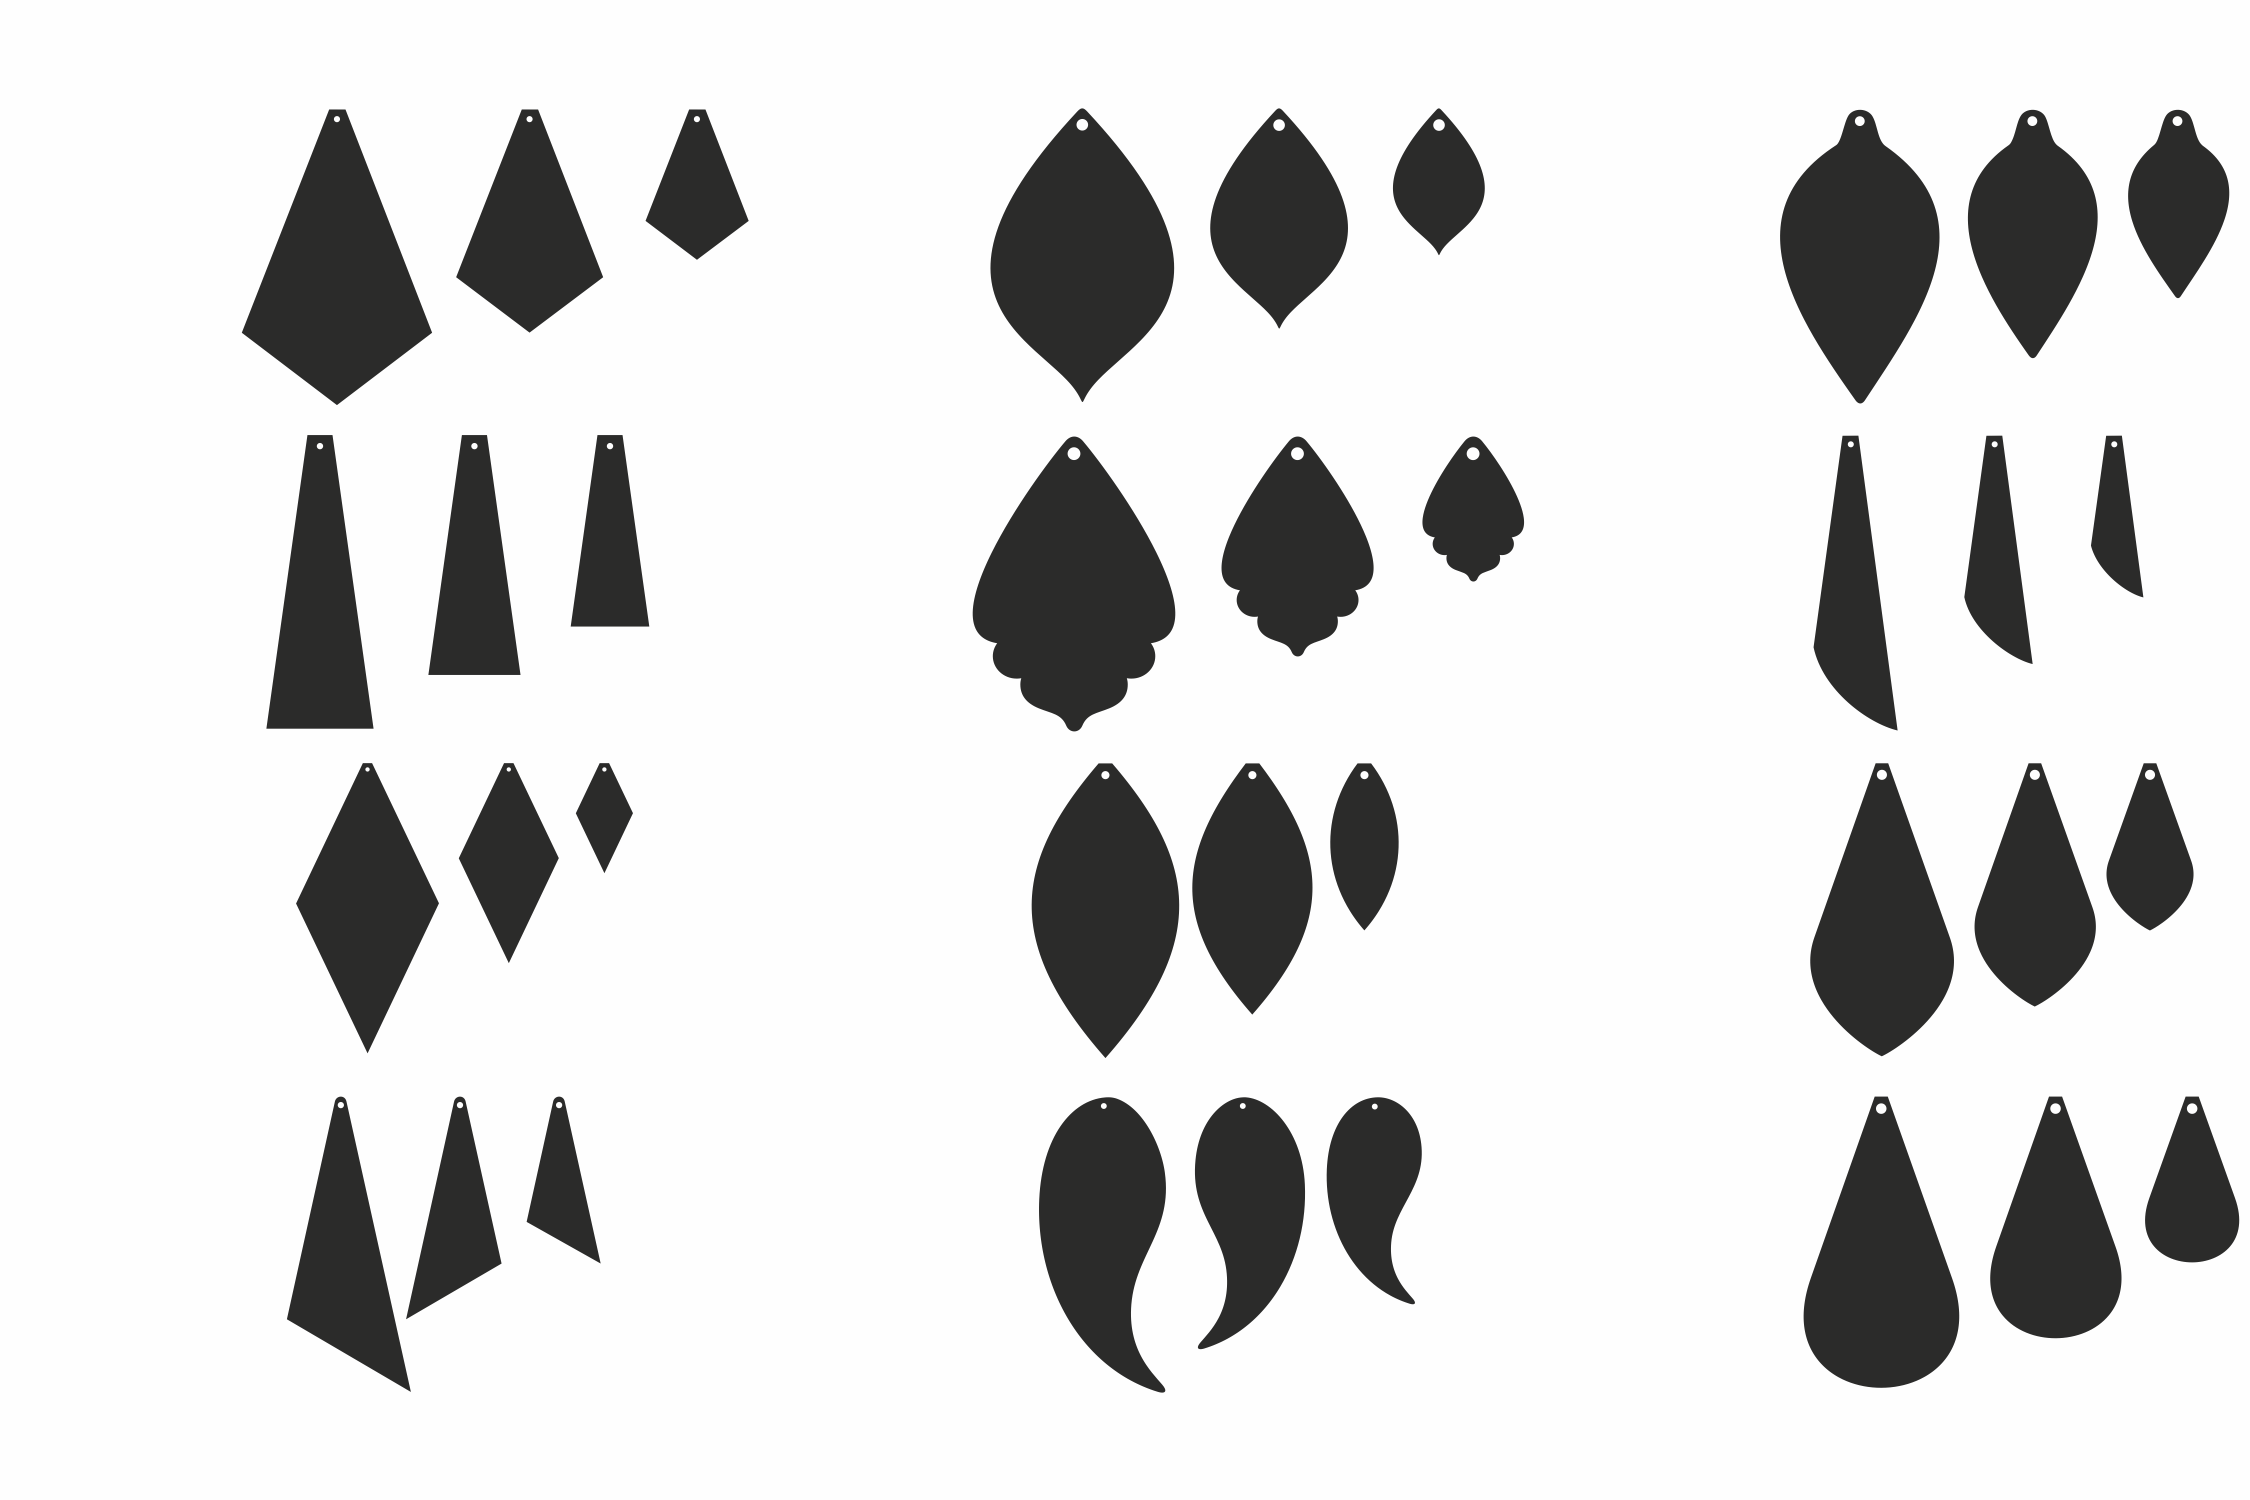 6797+ Free Svg Files For Cricut Leather Earrings File for DIY T-shirt, Mug, Decoration and more